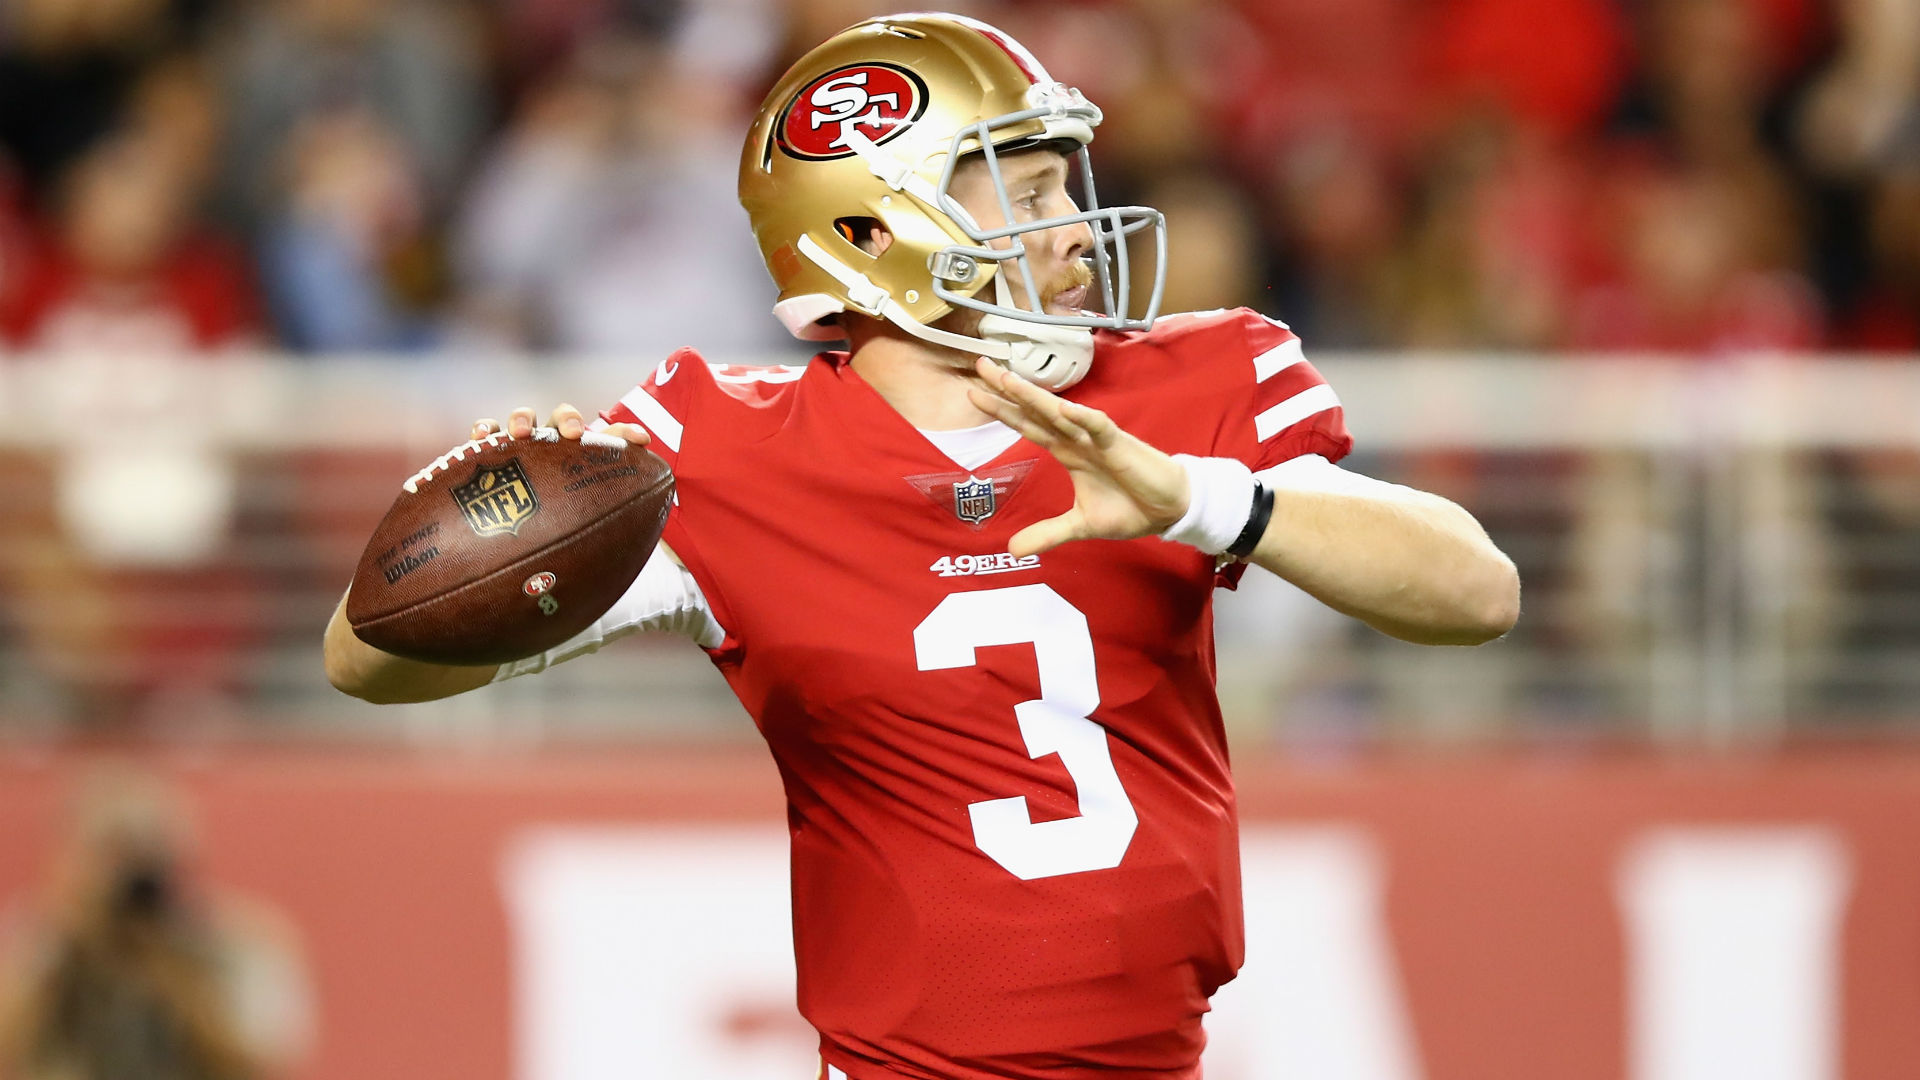 Mullens helps 49ers past Raiders